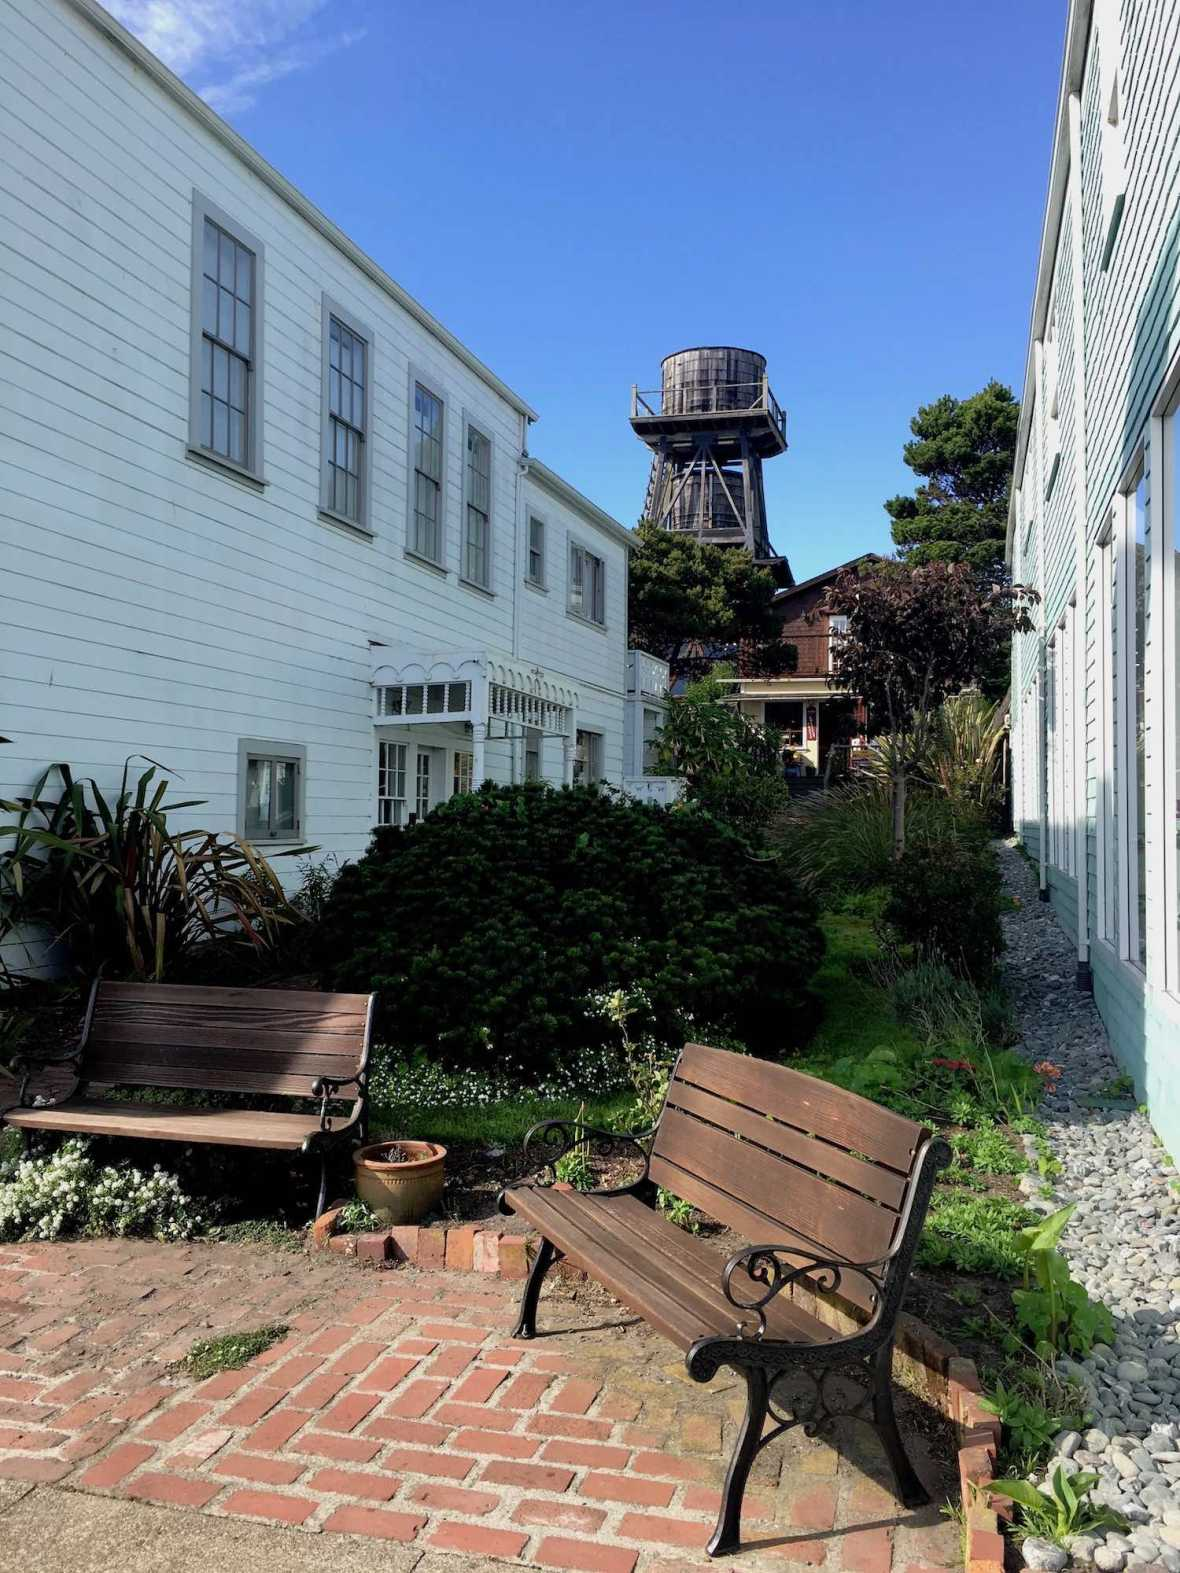 Pocket garden and water tower in Mendocino, California